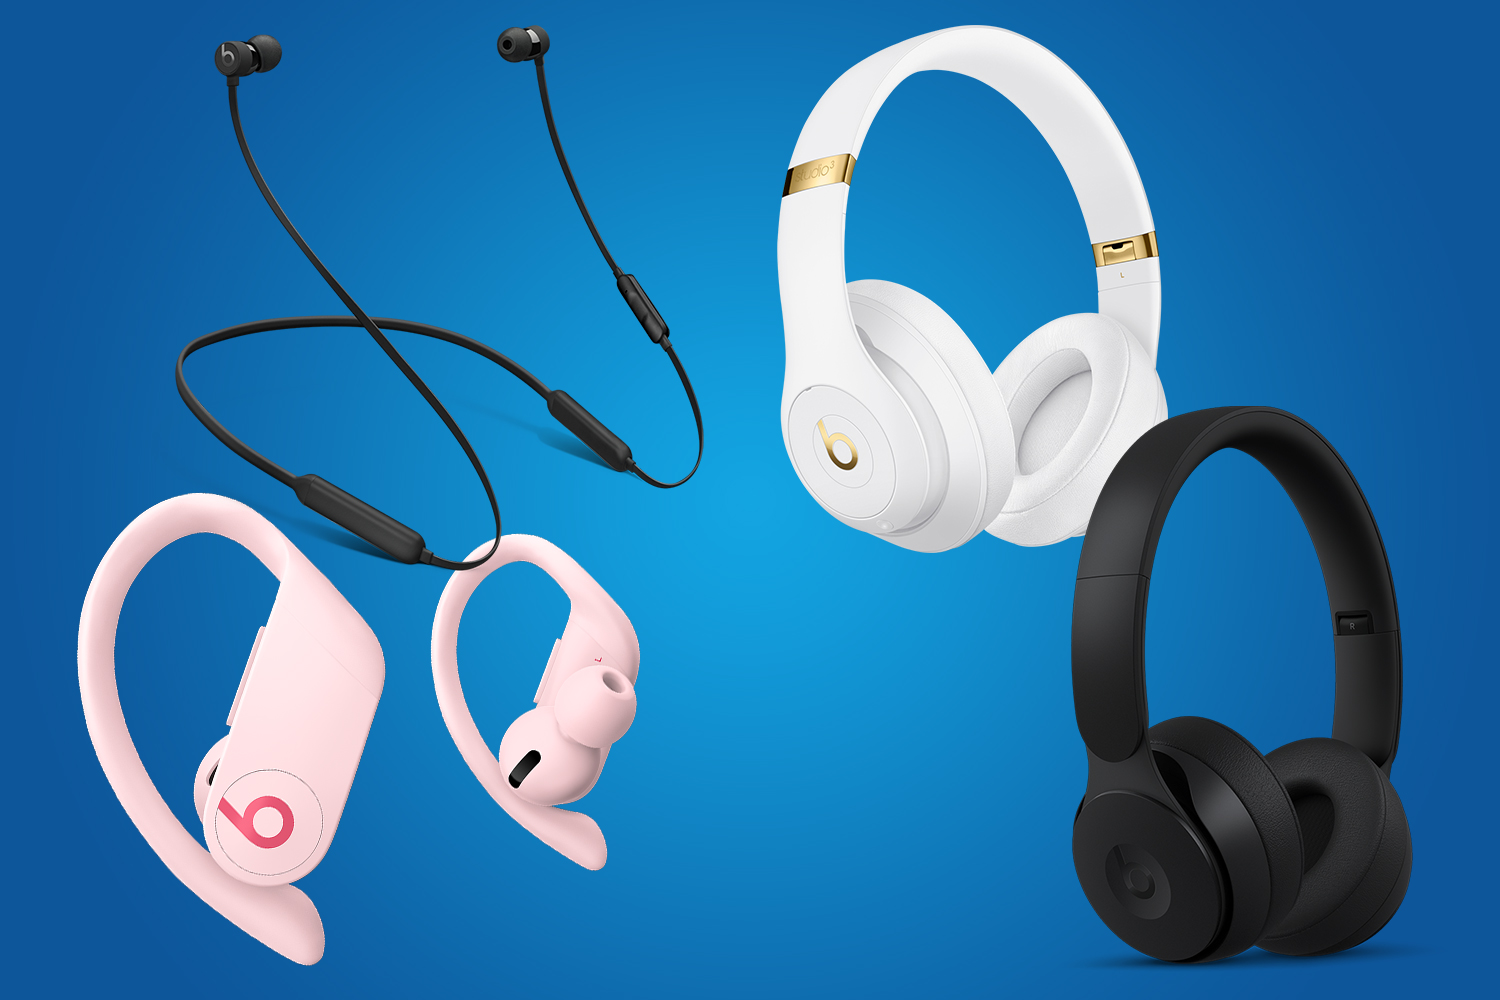 Keep an eye out for Beats discounts across retailers